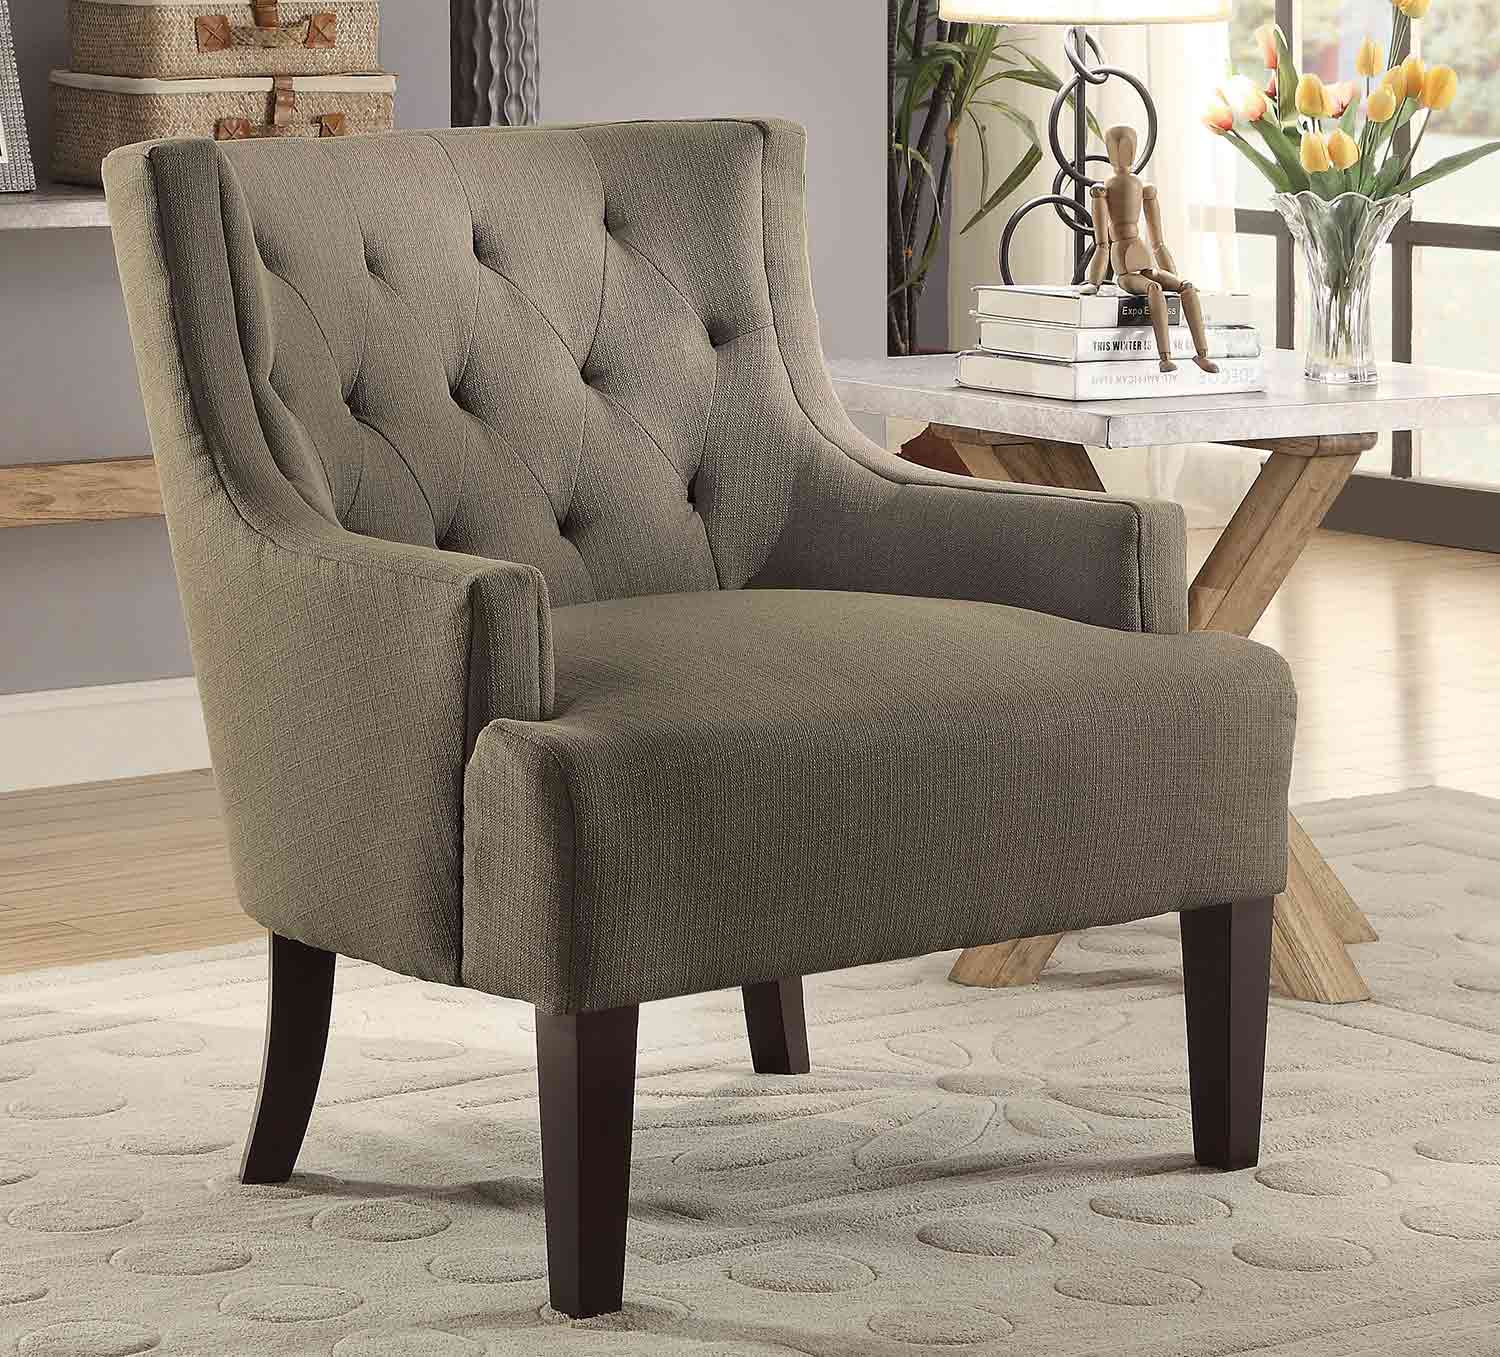 Homelegance Dulce Accent Chair - Grey